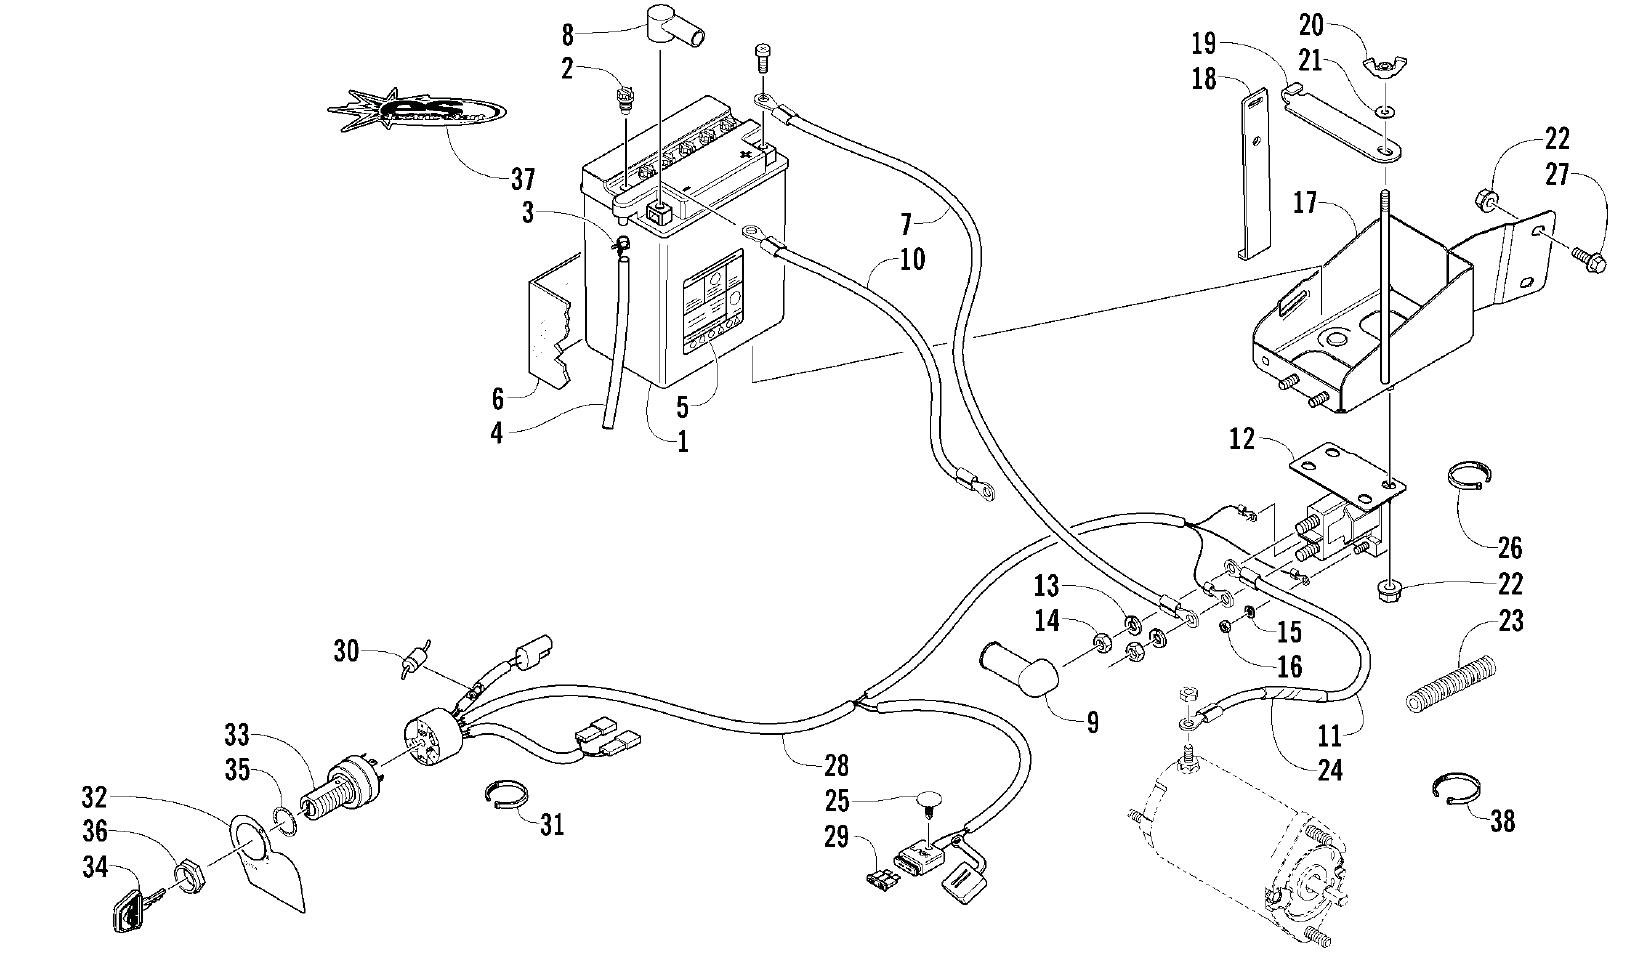 Arctic Cat 400 4x4 Schematics Atv Wiring Diagram For A With